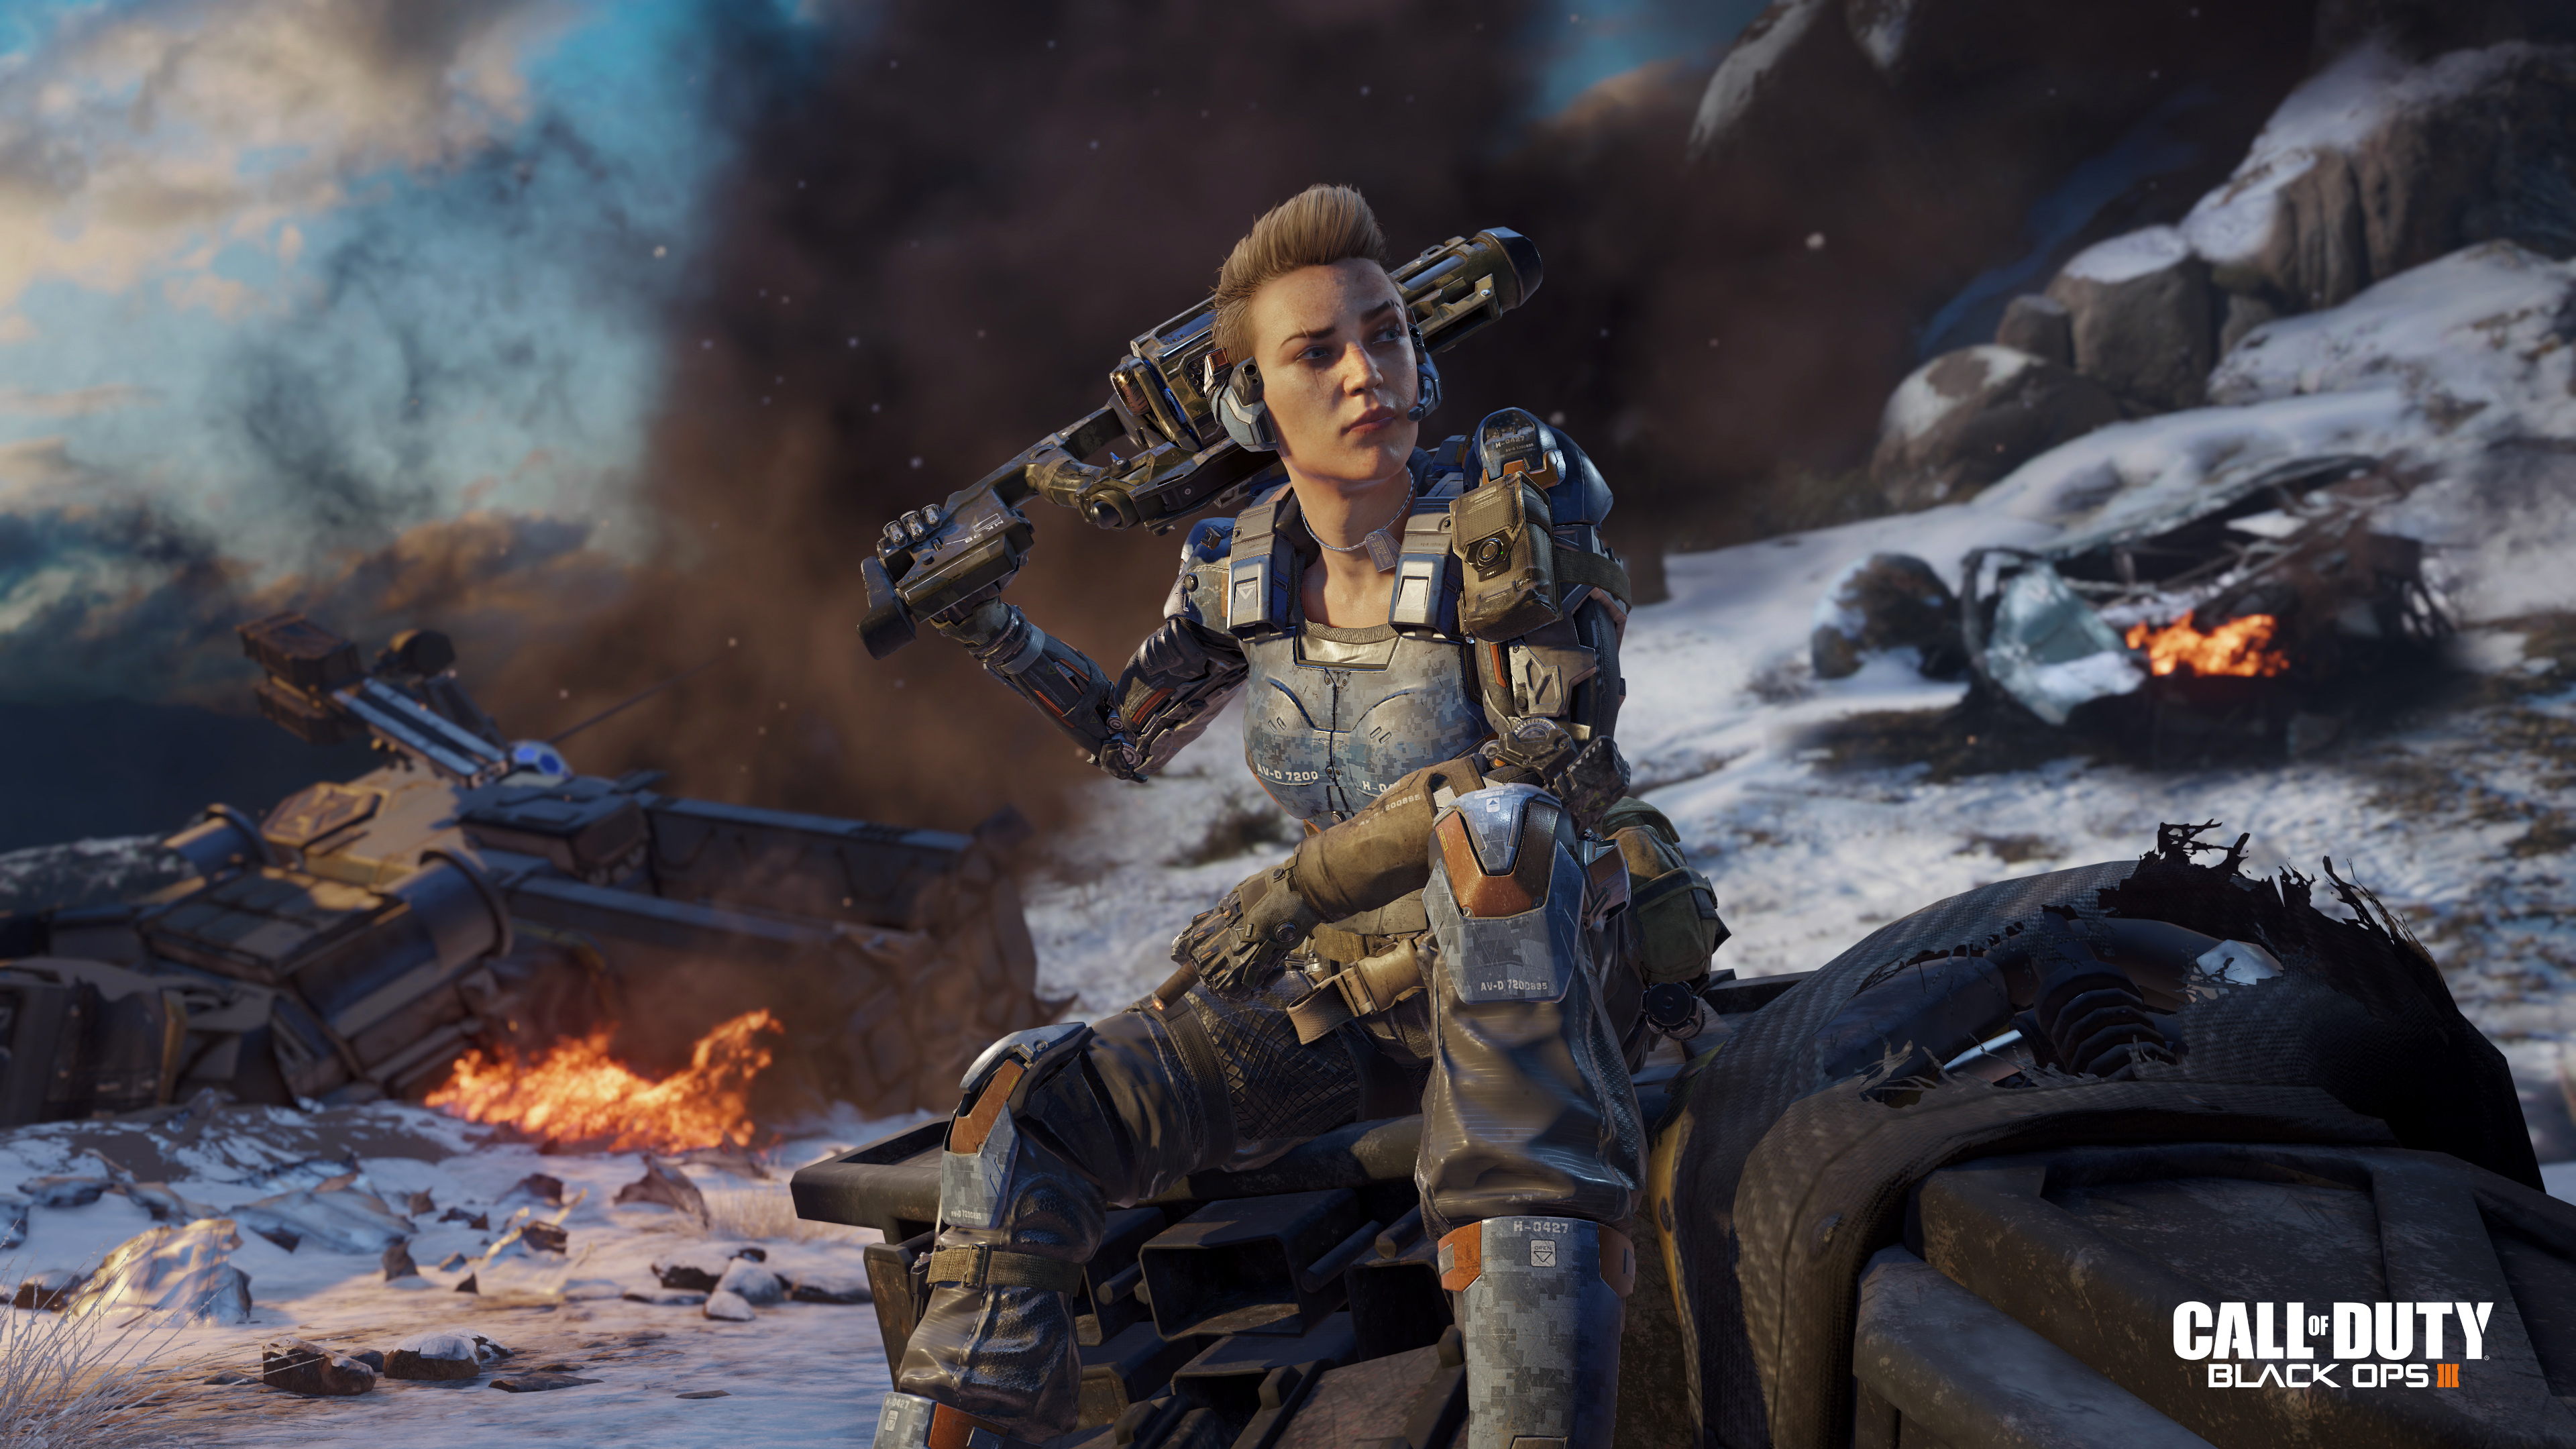 Scarica Call Of Duty Black Ops III per Android 4